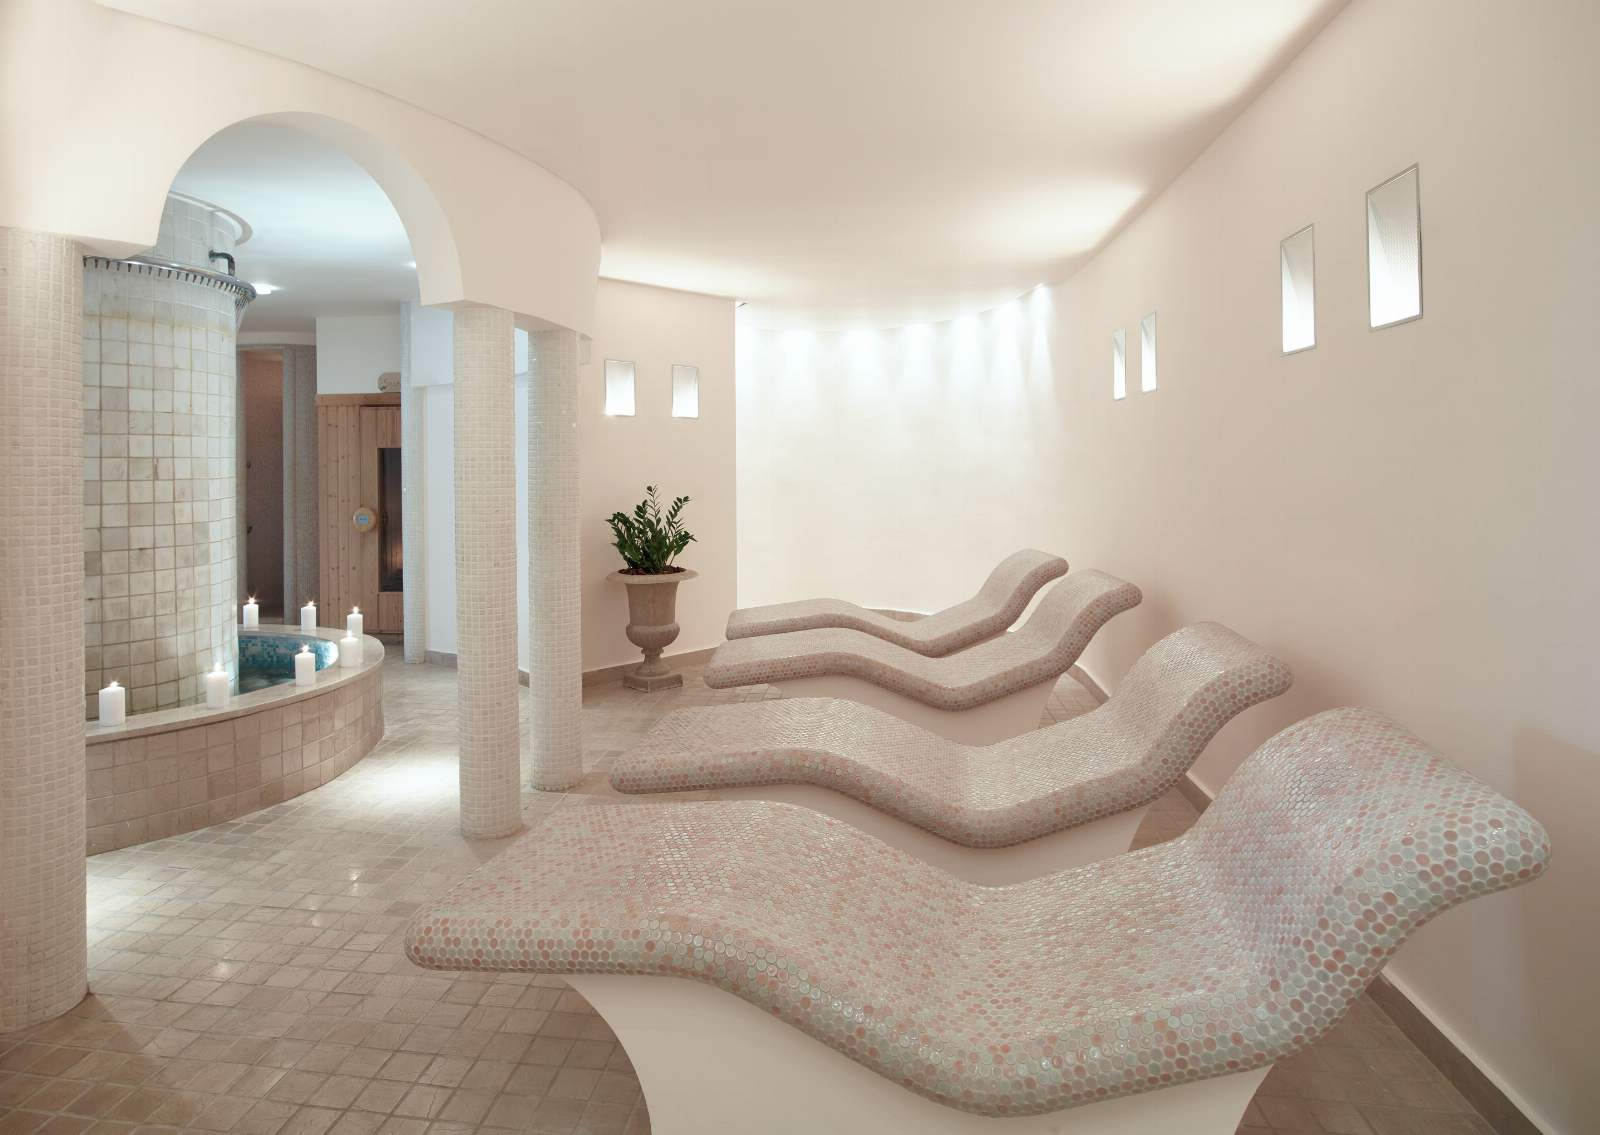 Sani Beach Spa Hotbeds